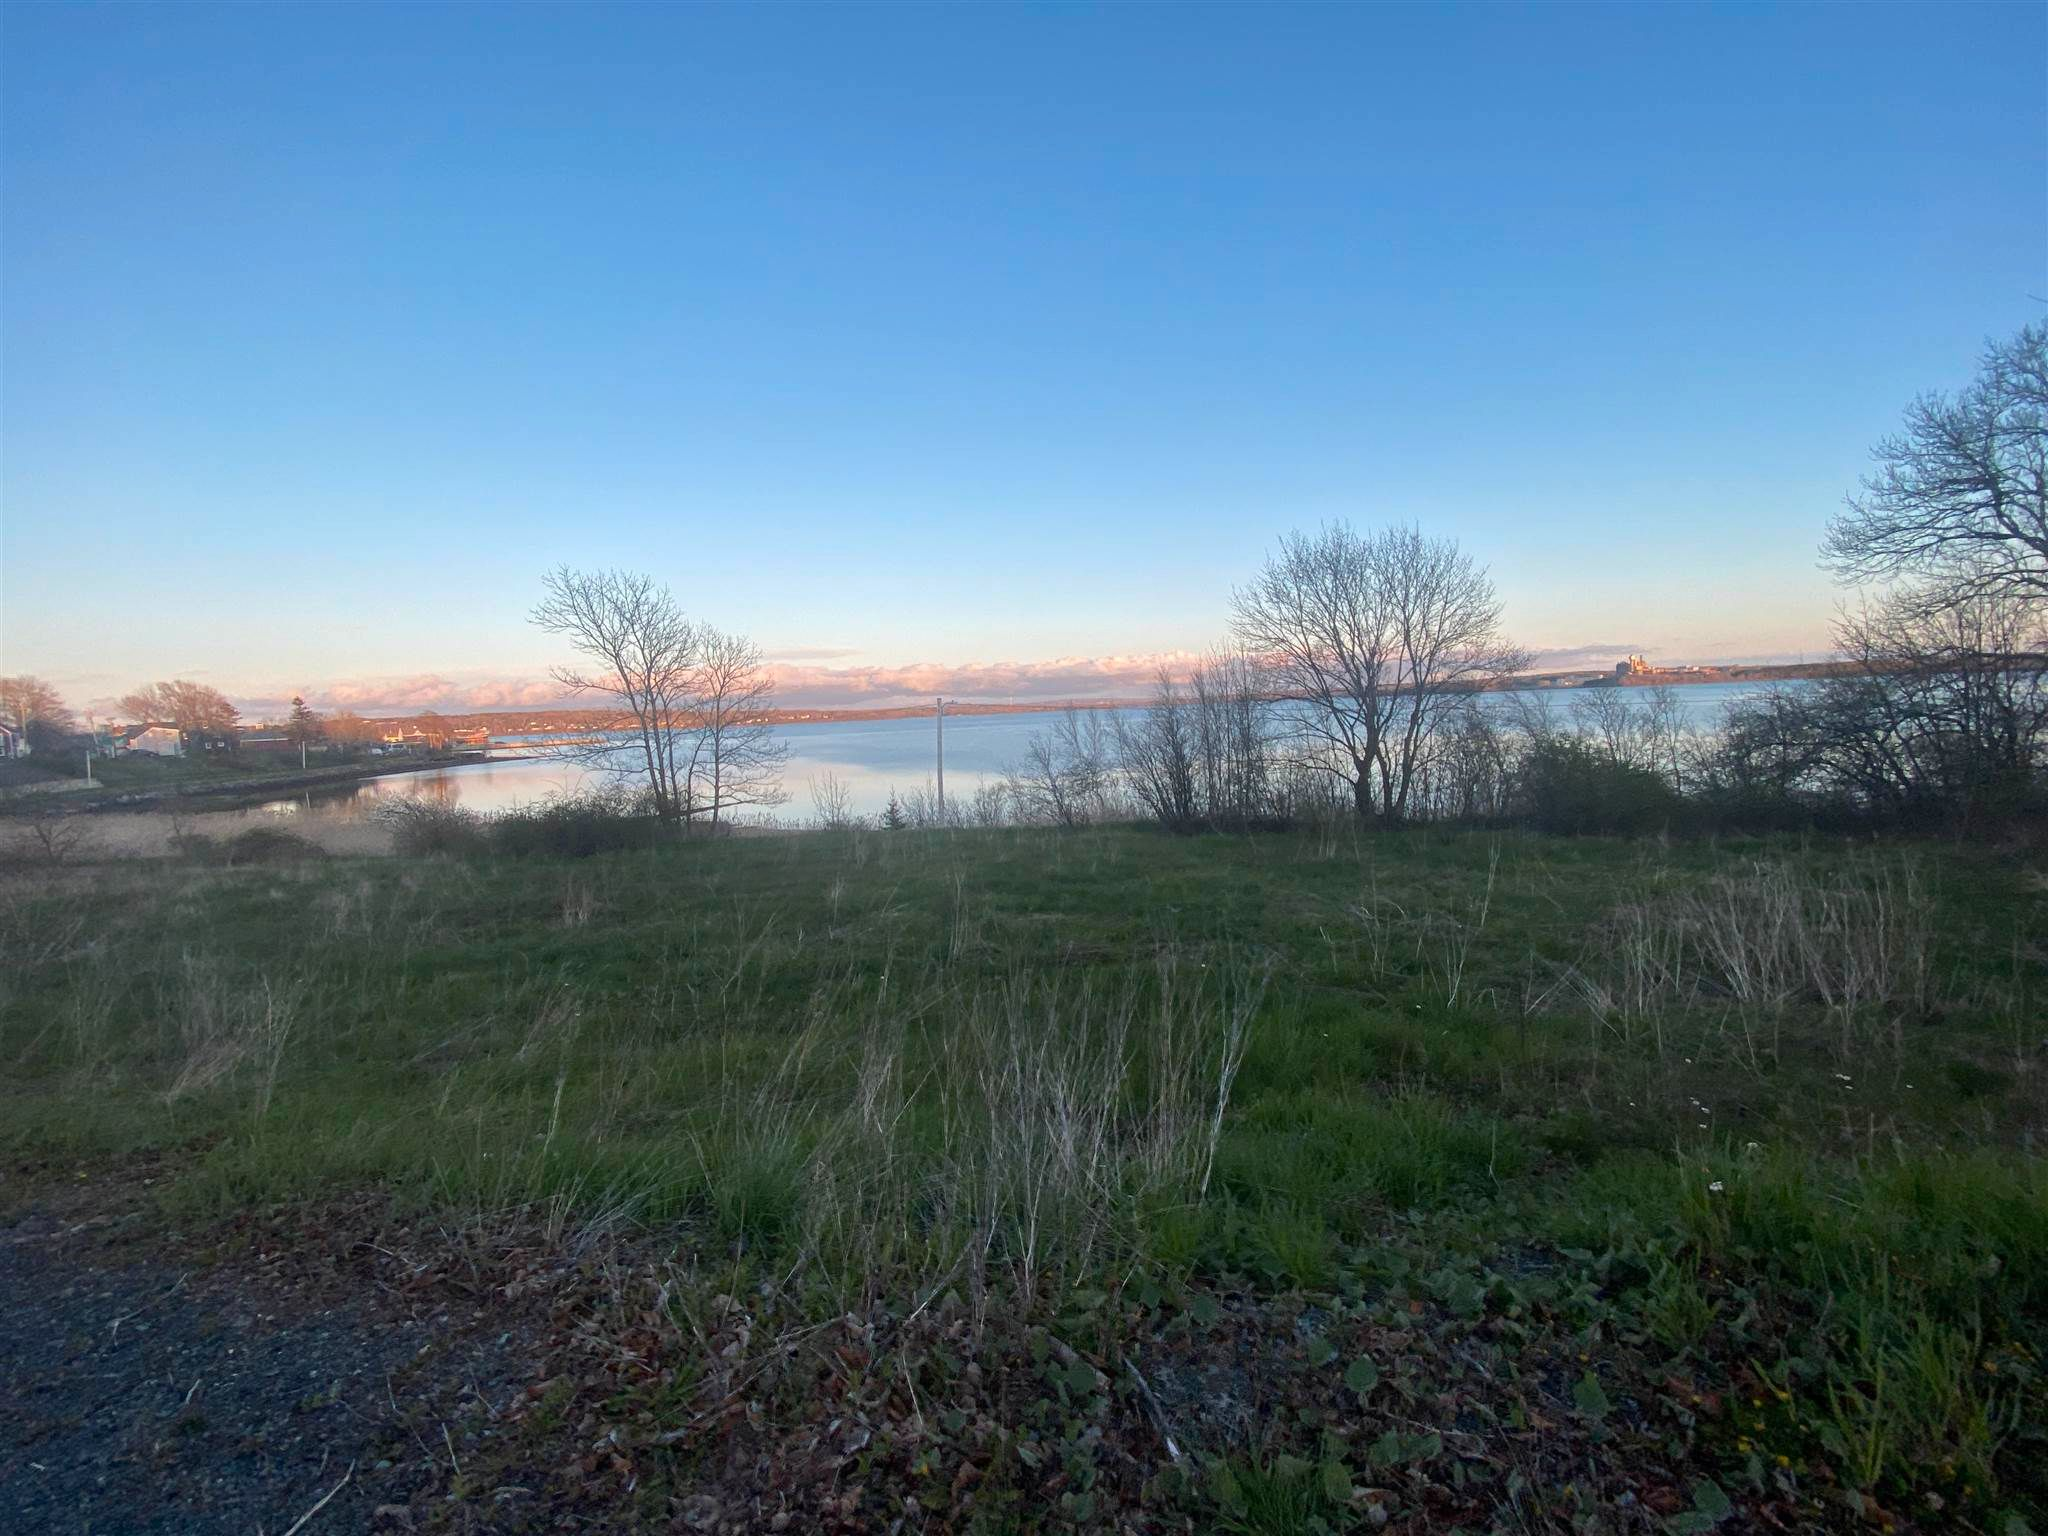 Main Photo: 57 Atlantic Street in Pictou: 107-Trenton,Westville,Pictou Vacant Land for sale (Northern Region)  : MLS®# 202111724